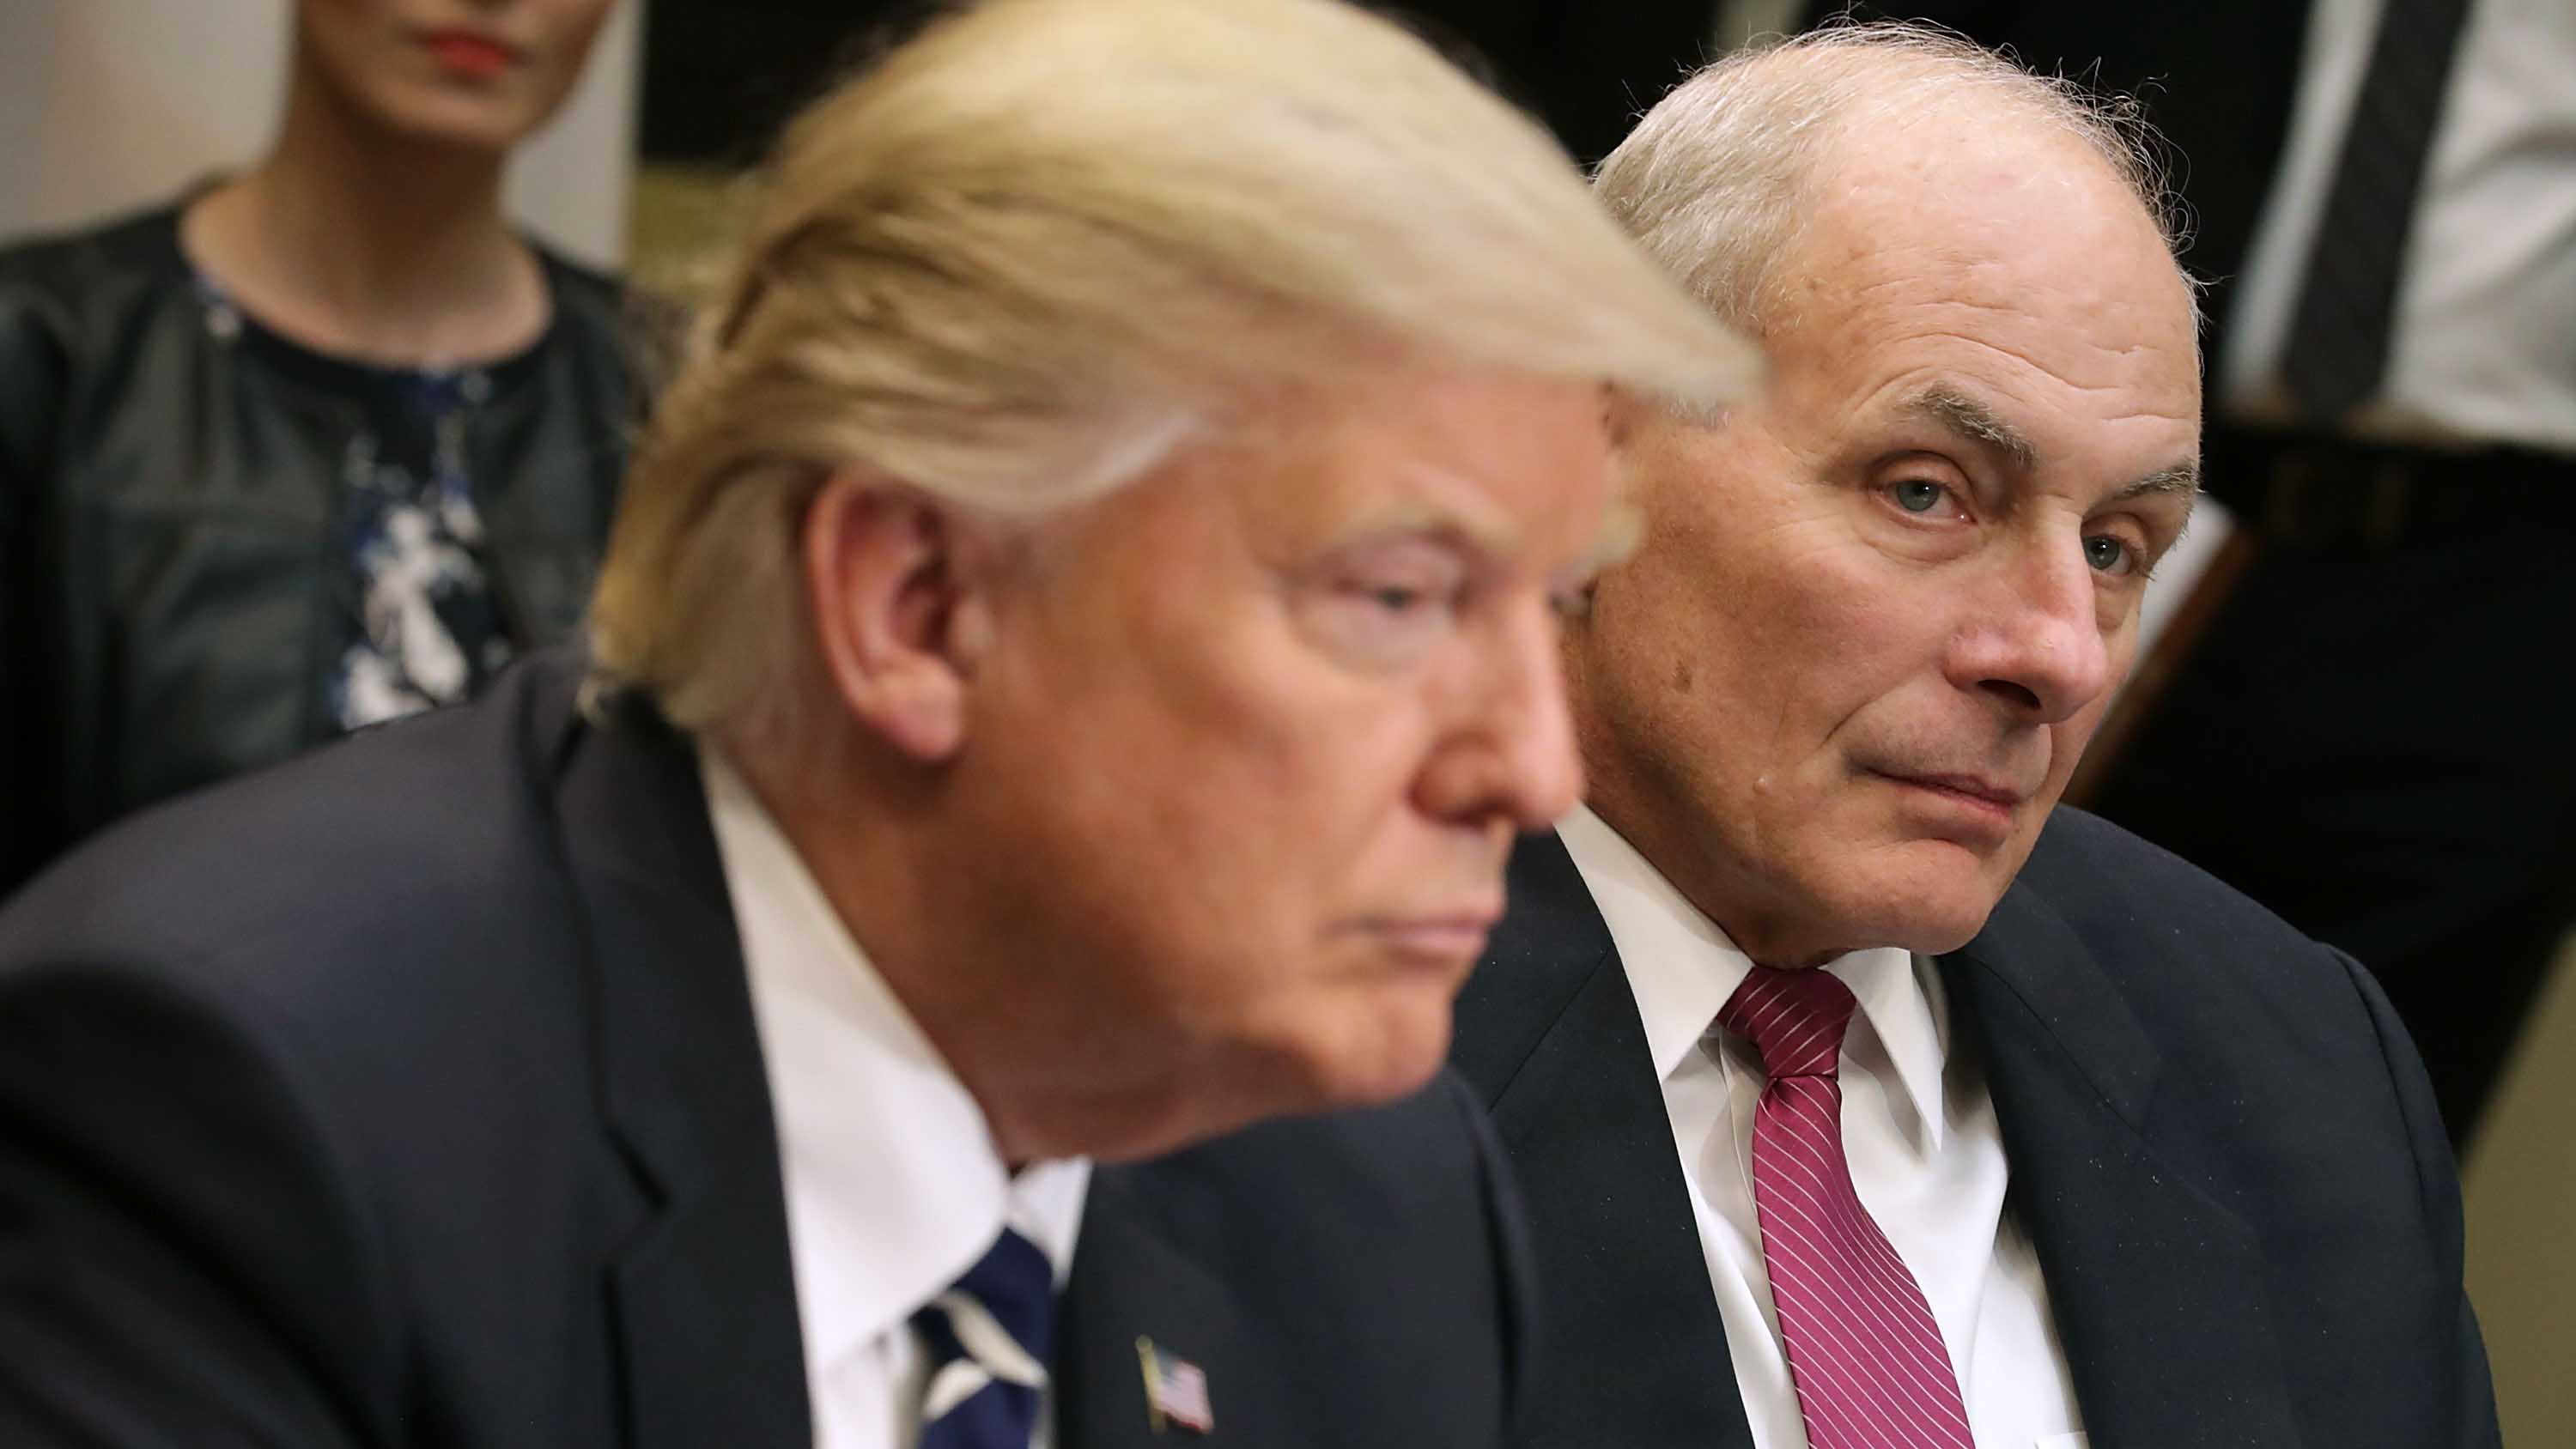 This January 31, 2017, file photo shows Homeland Security Secretary John Kelly listening as President Donald Trump speaks at a meeting with government cybersecurity experts at the White House.